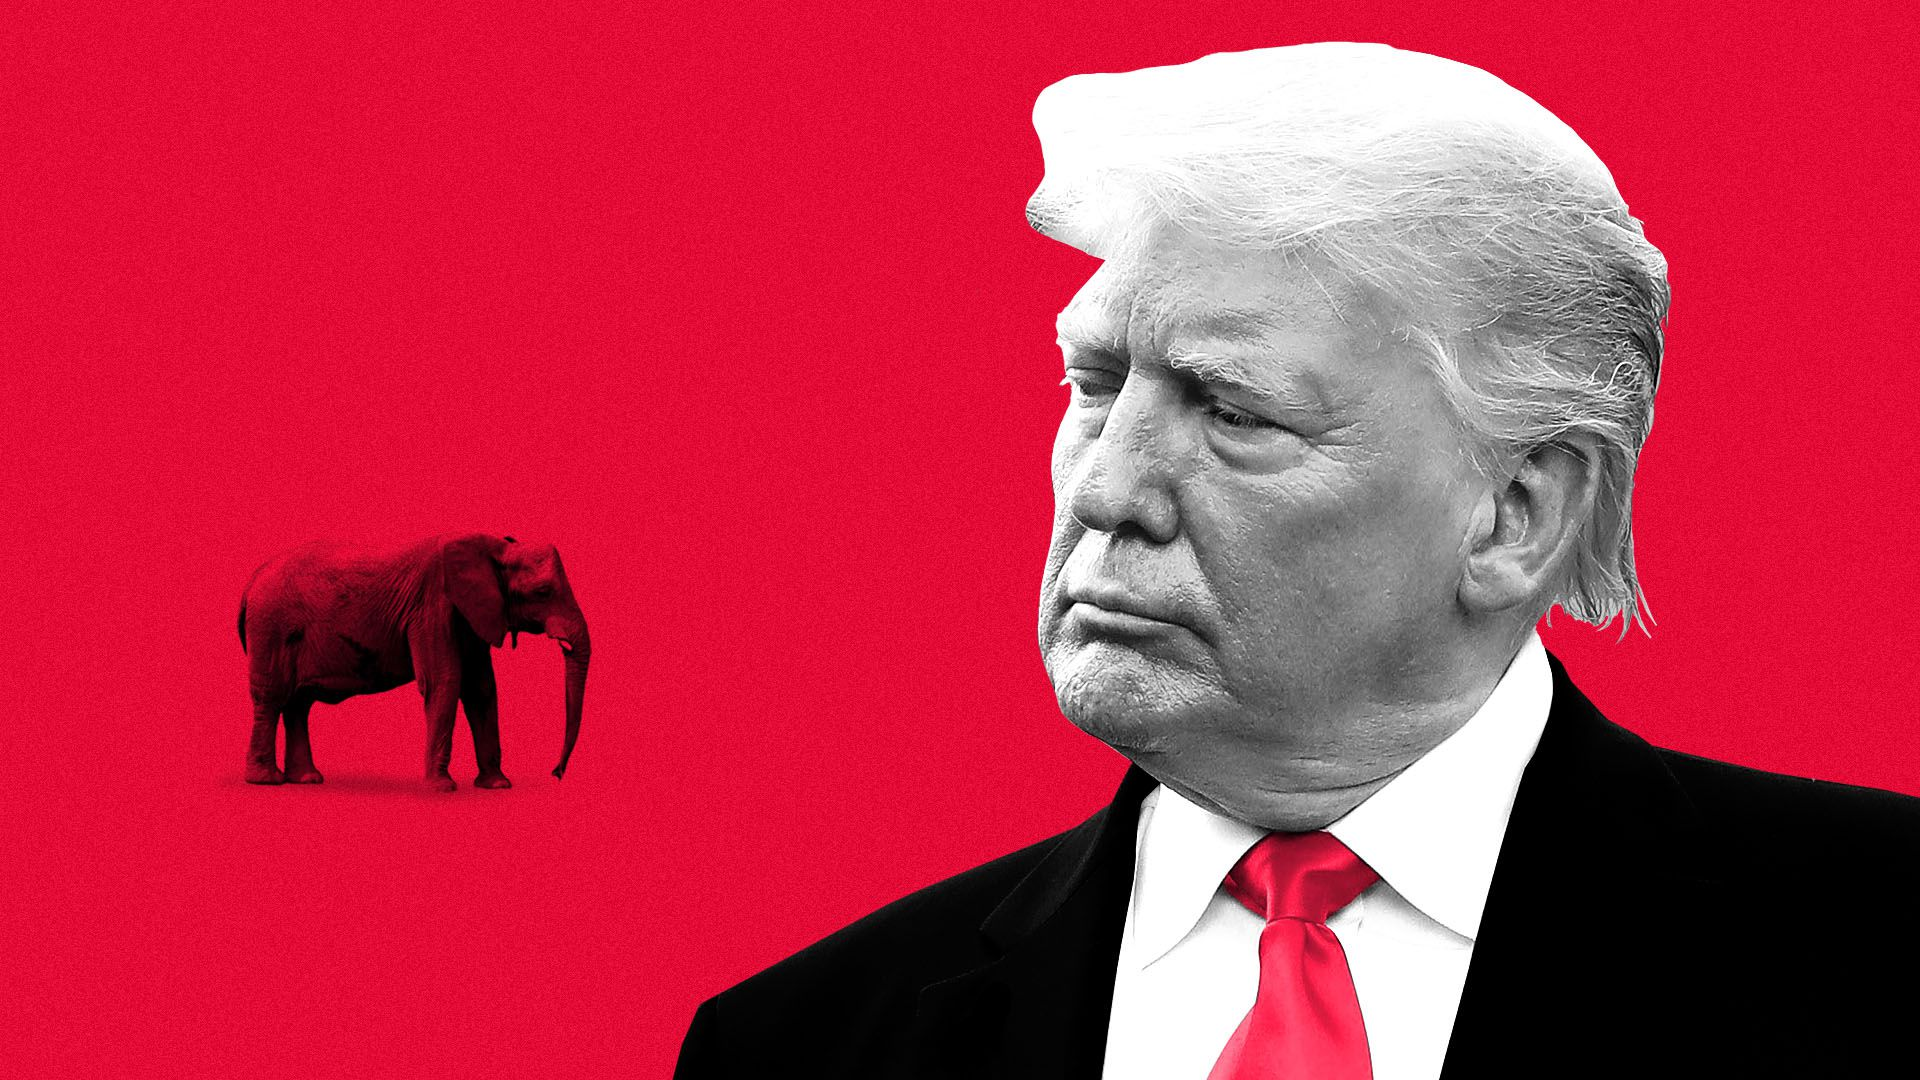 Illustration of Donald Trump staring down a small elephant.